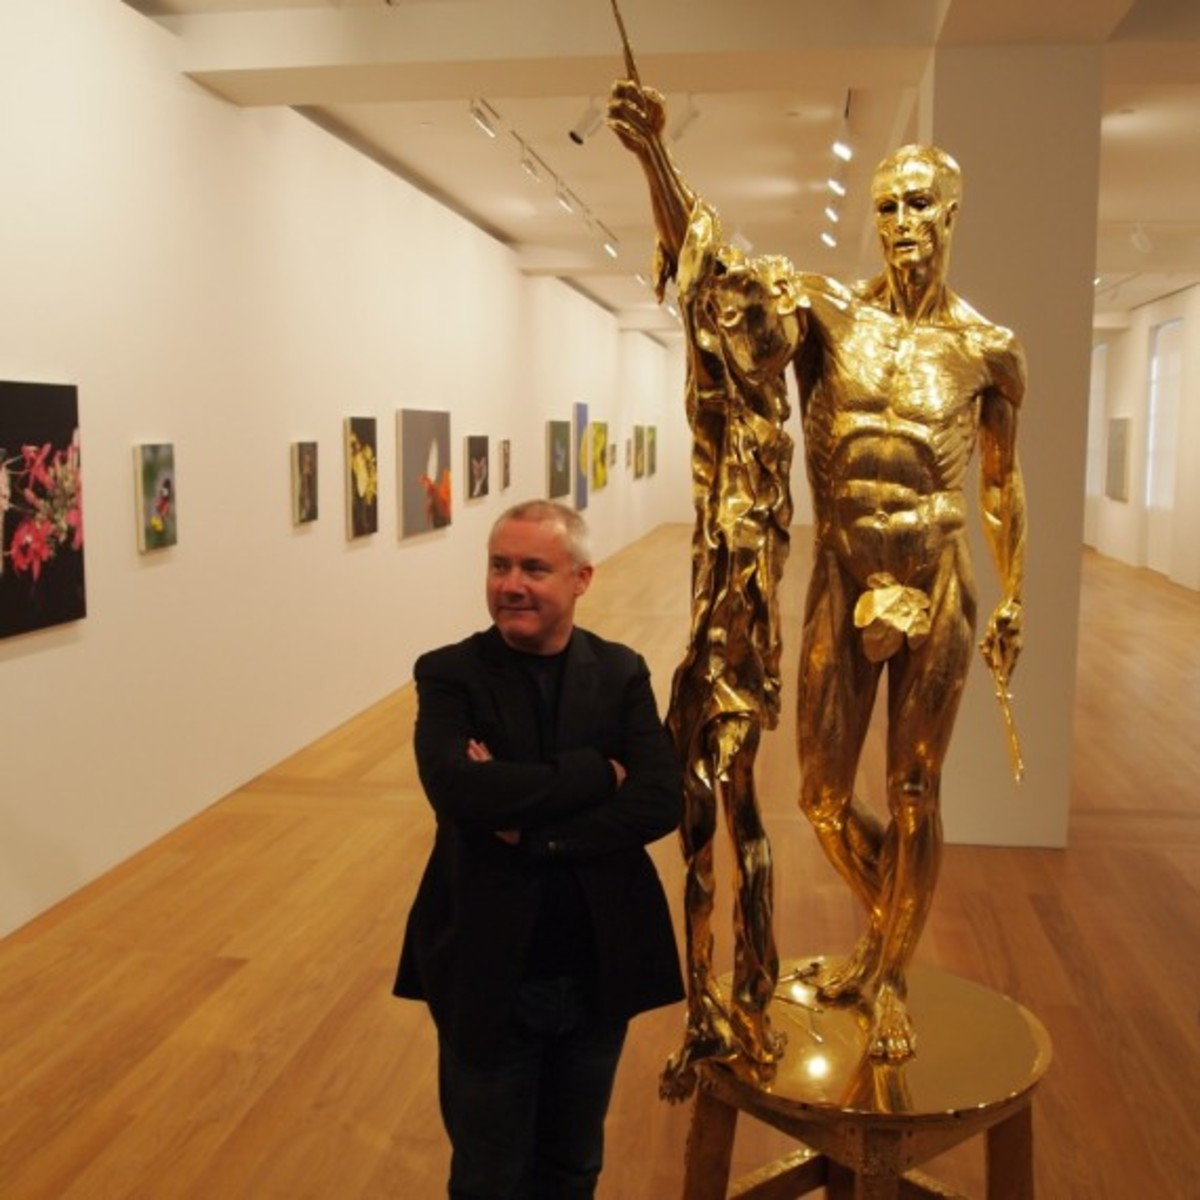 Damien Hirst with Saint Bartholomew Exquisite Pain